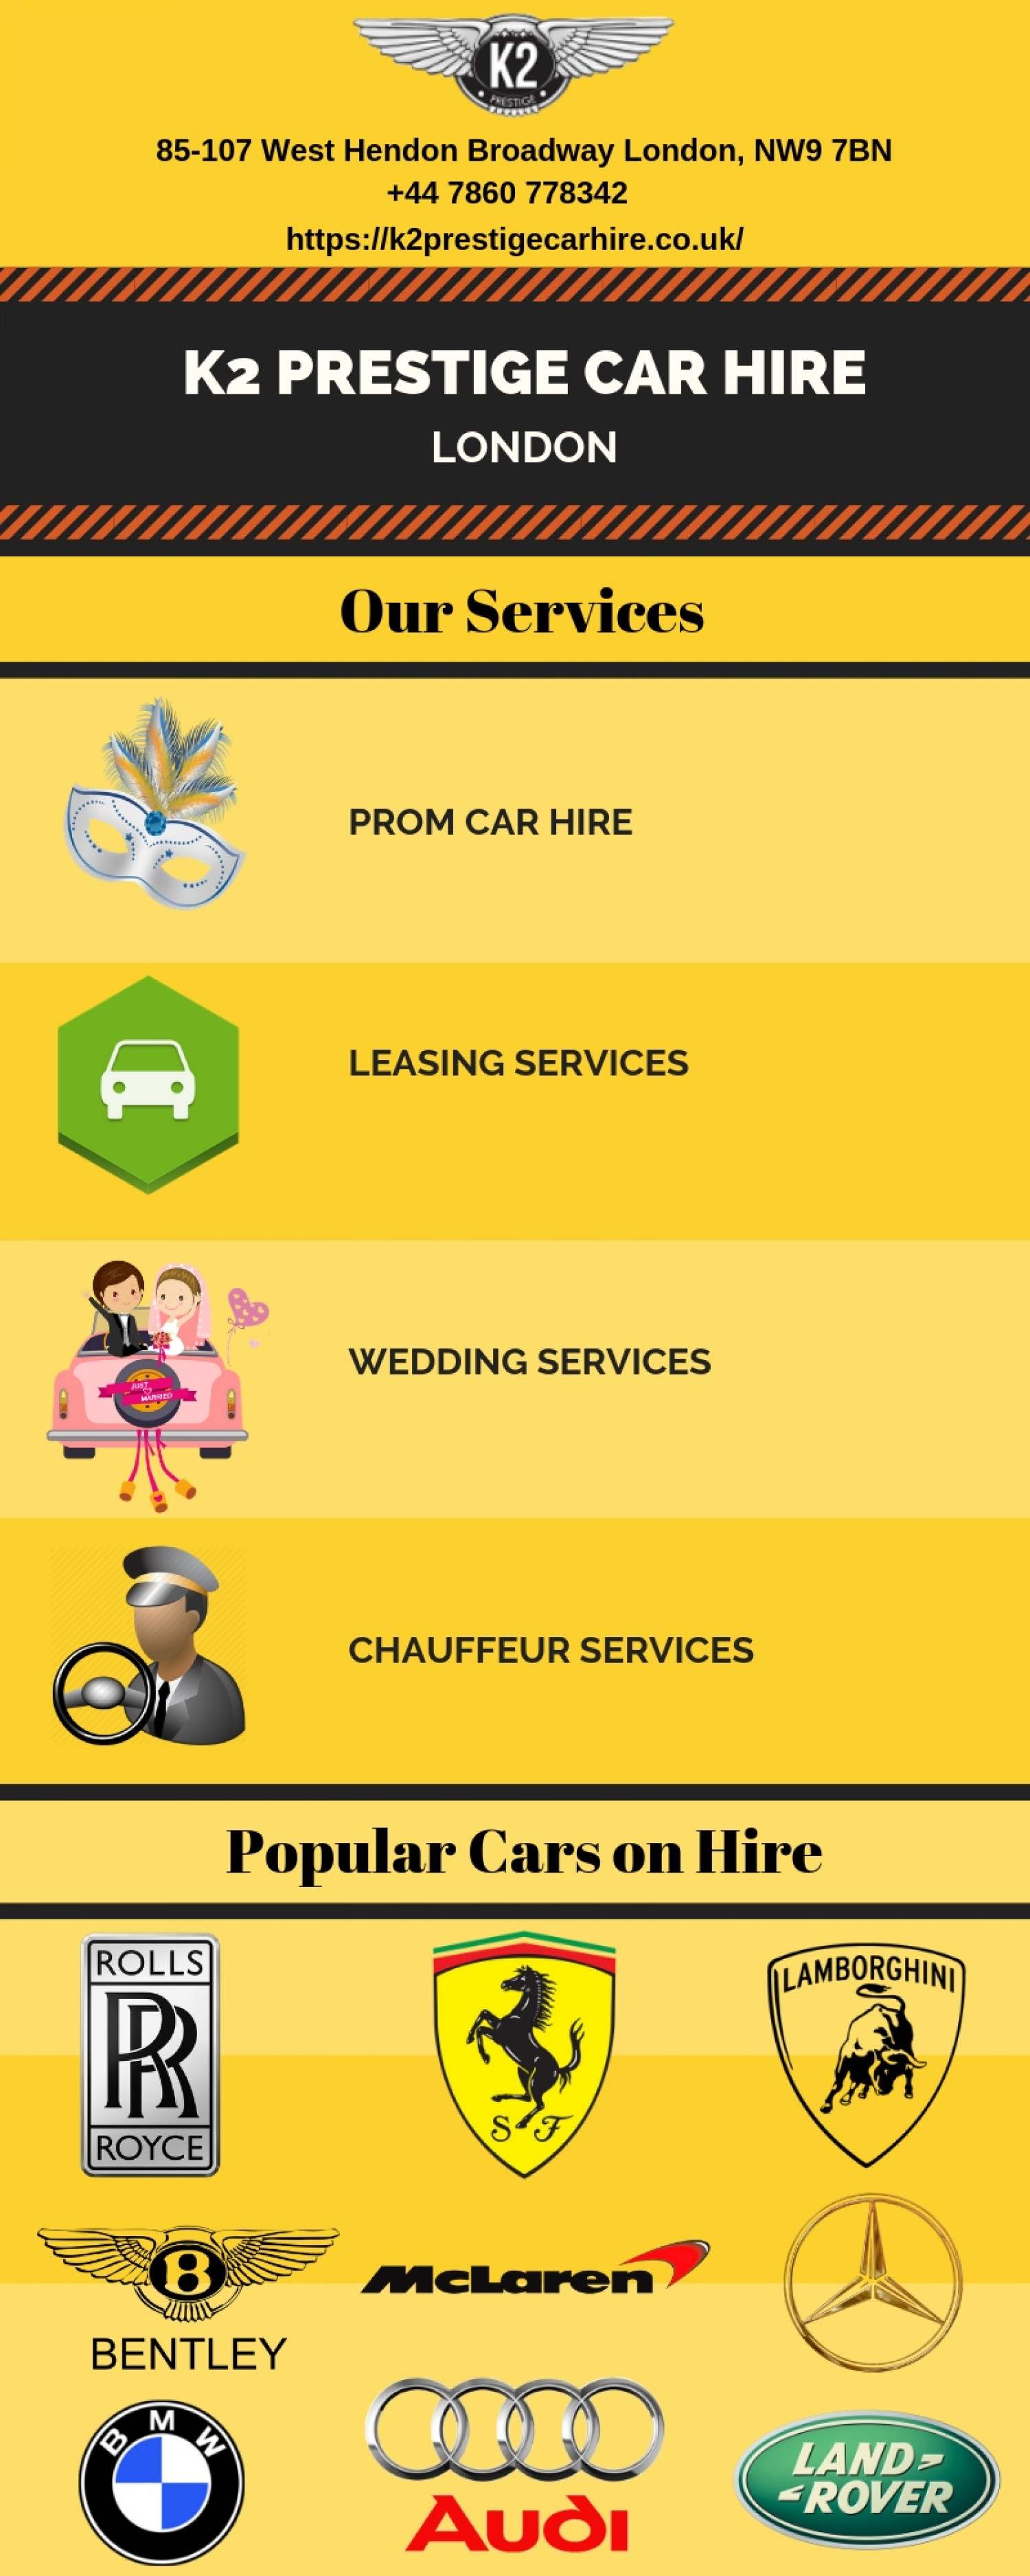 K2 Prestige Car Hire in London Infographic